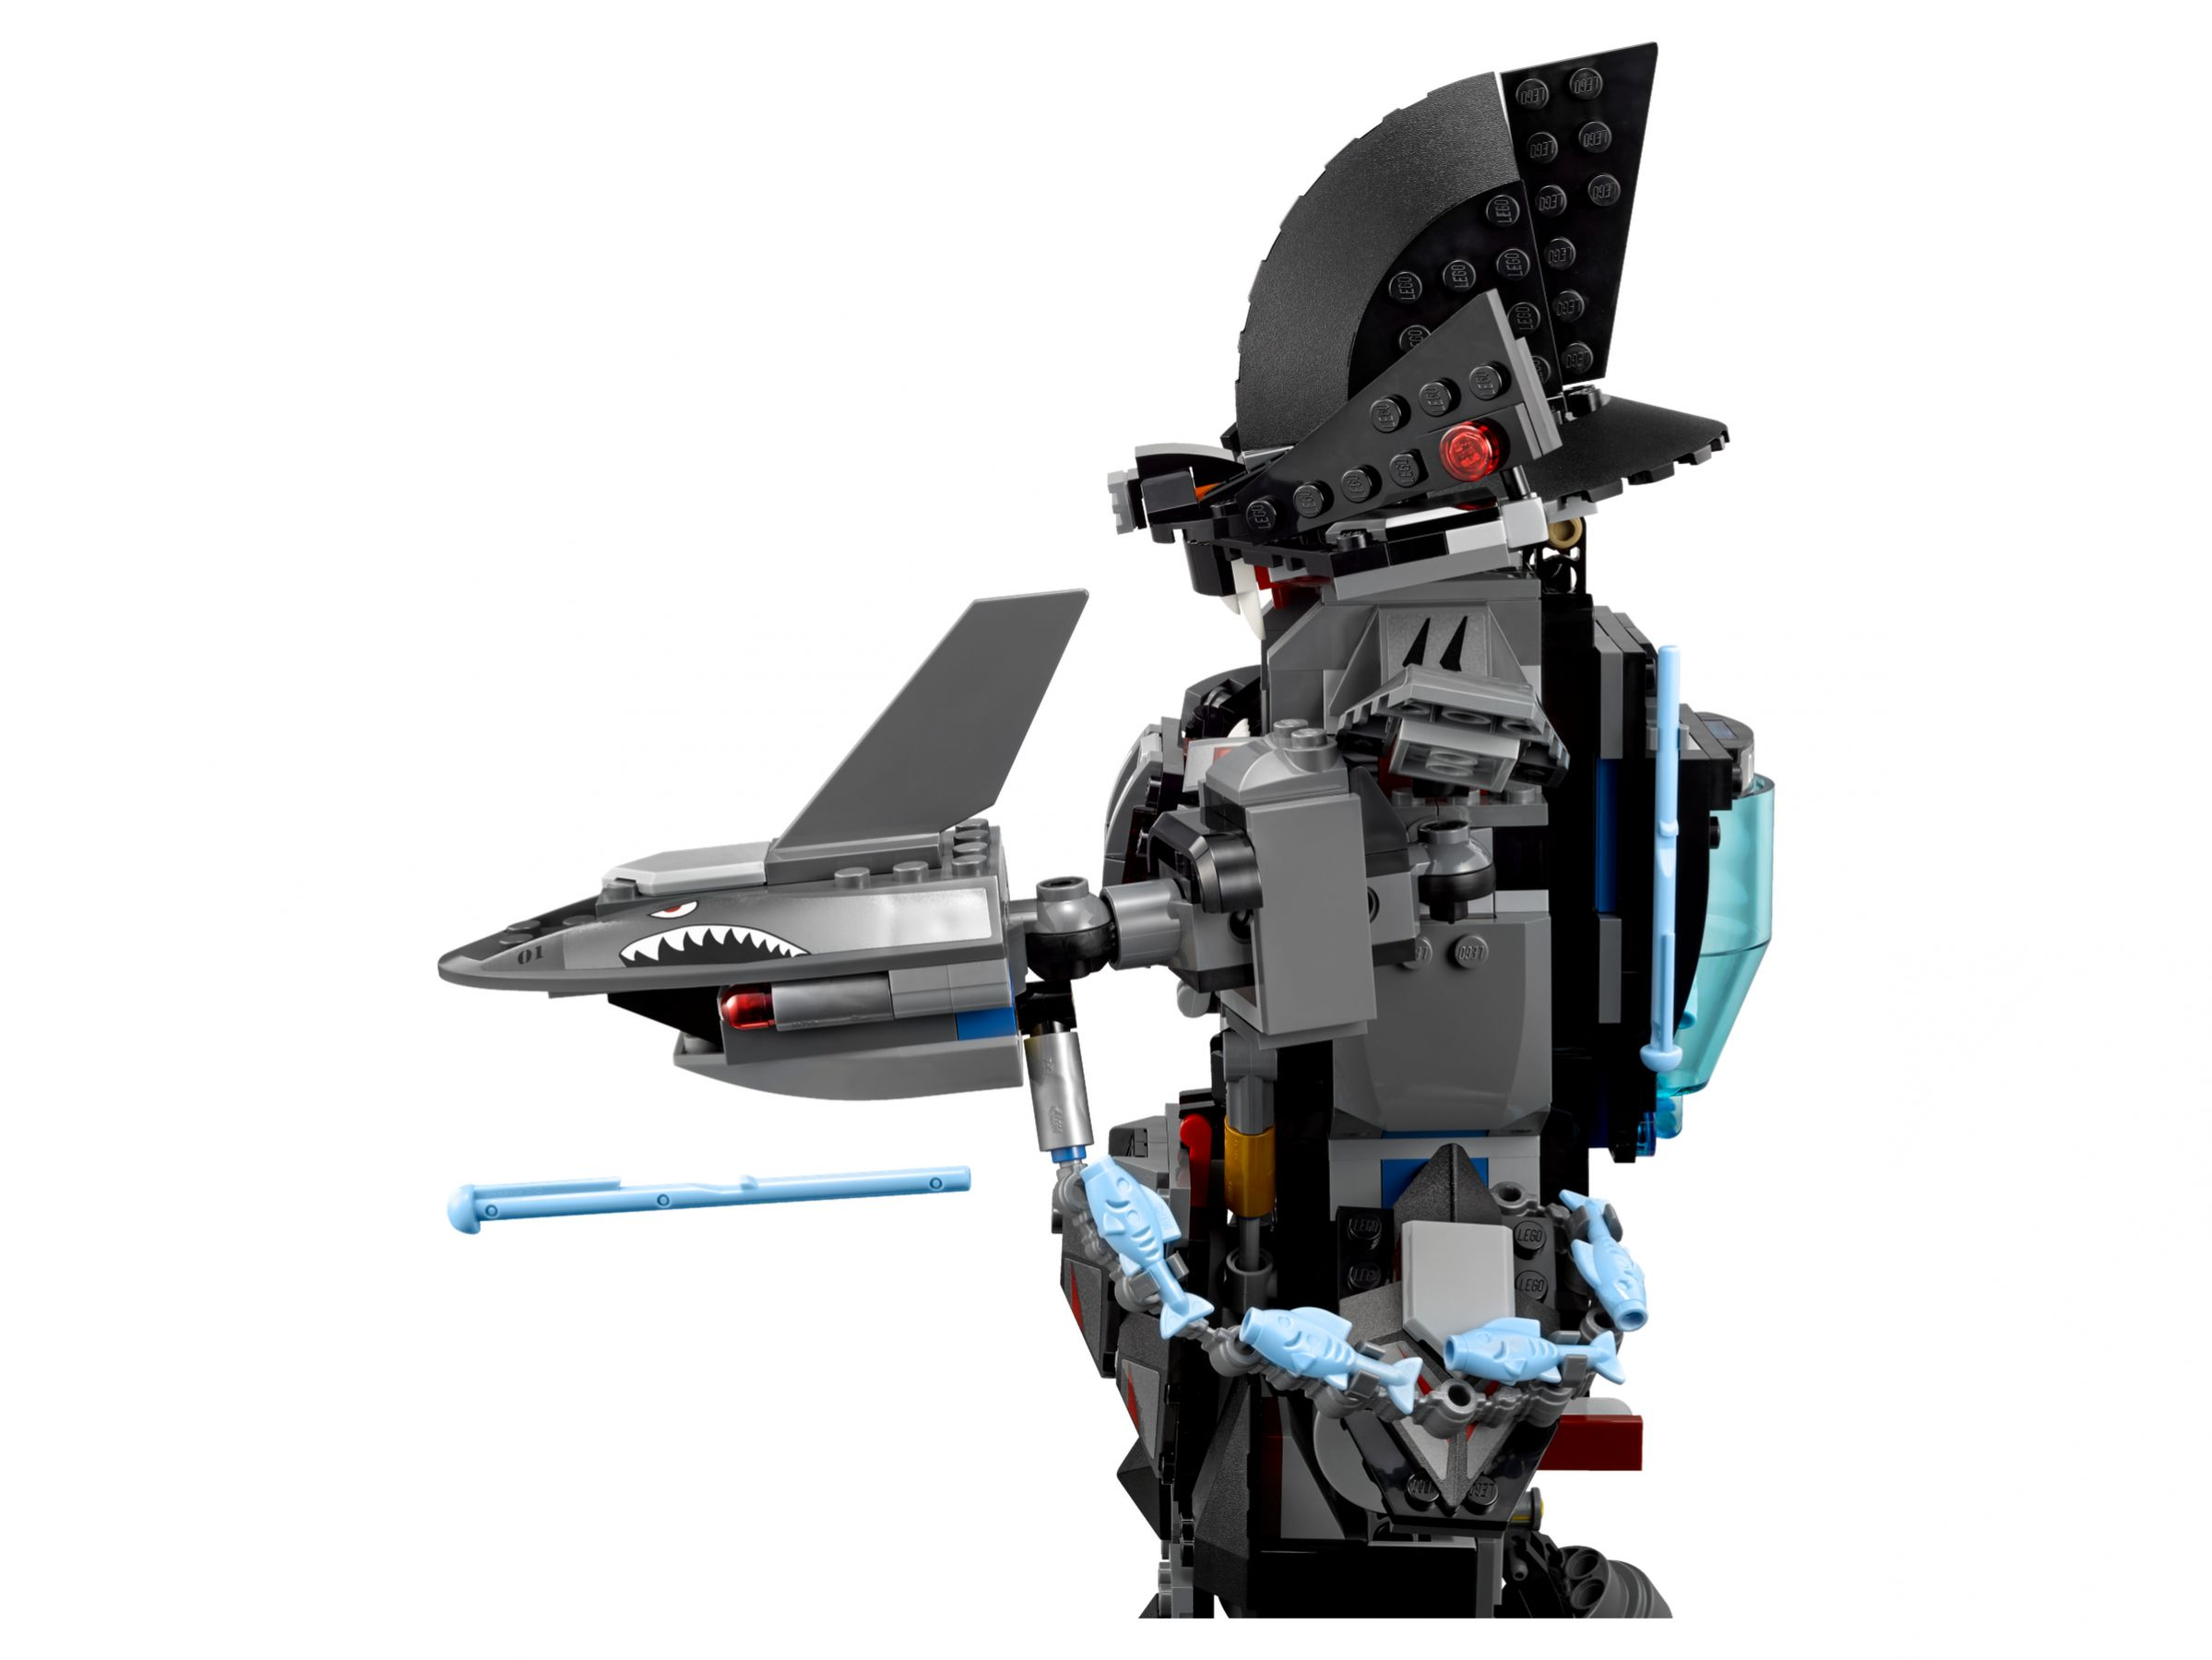 LEGO The LEGO Ninjago Movie 70613 Garmadon's Robo-Hai LEGO_70613_alt6.jpg